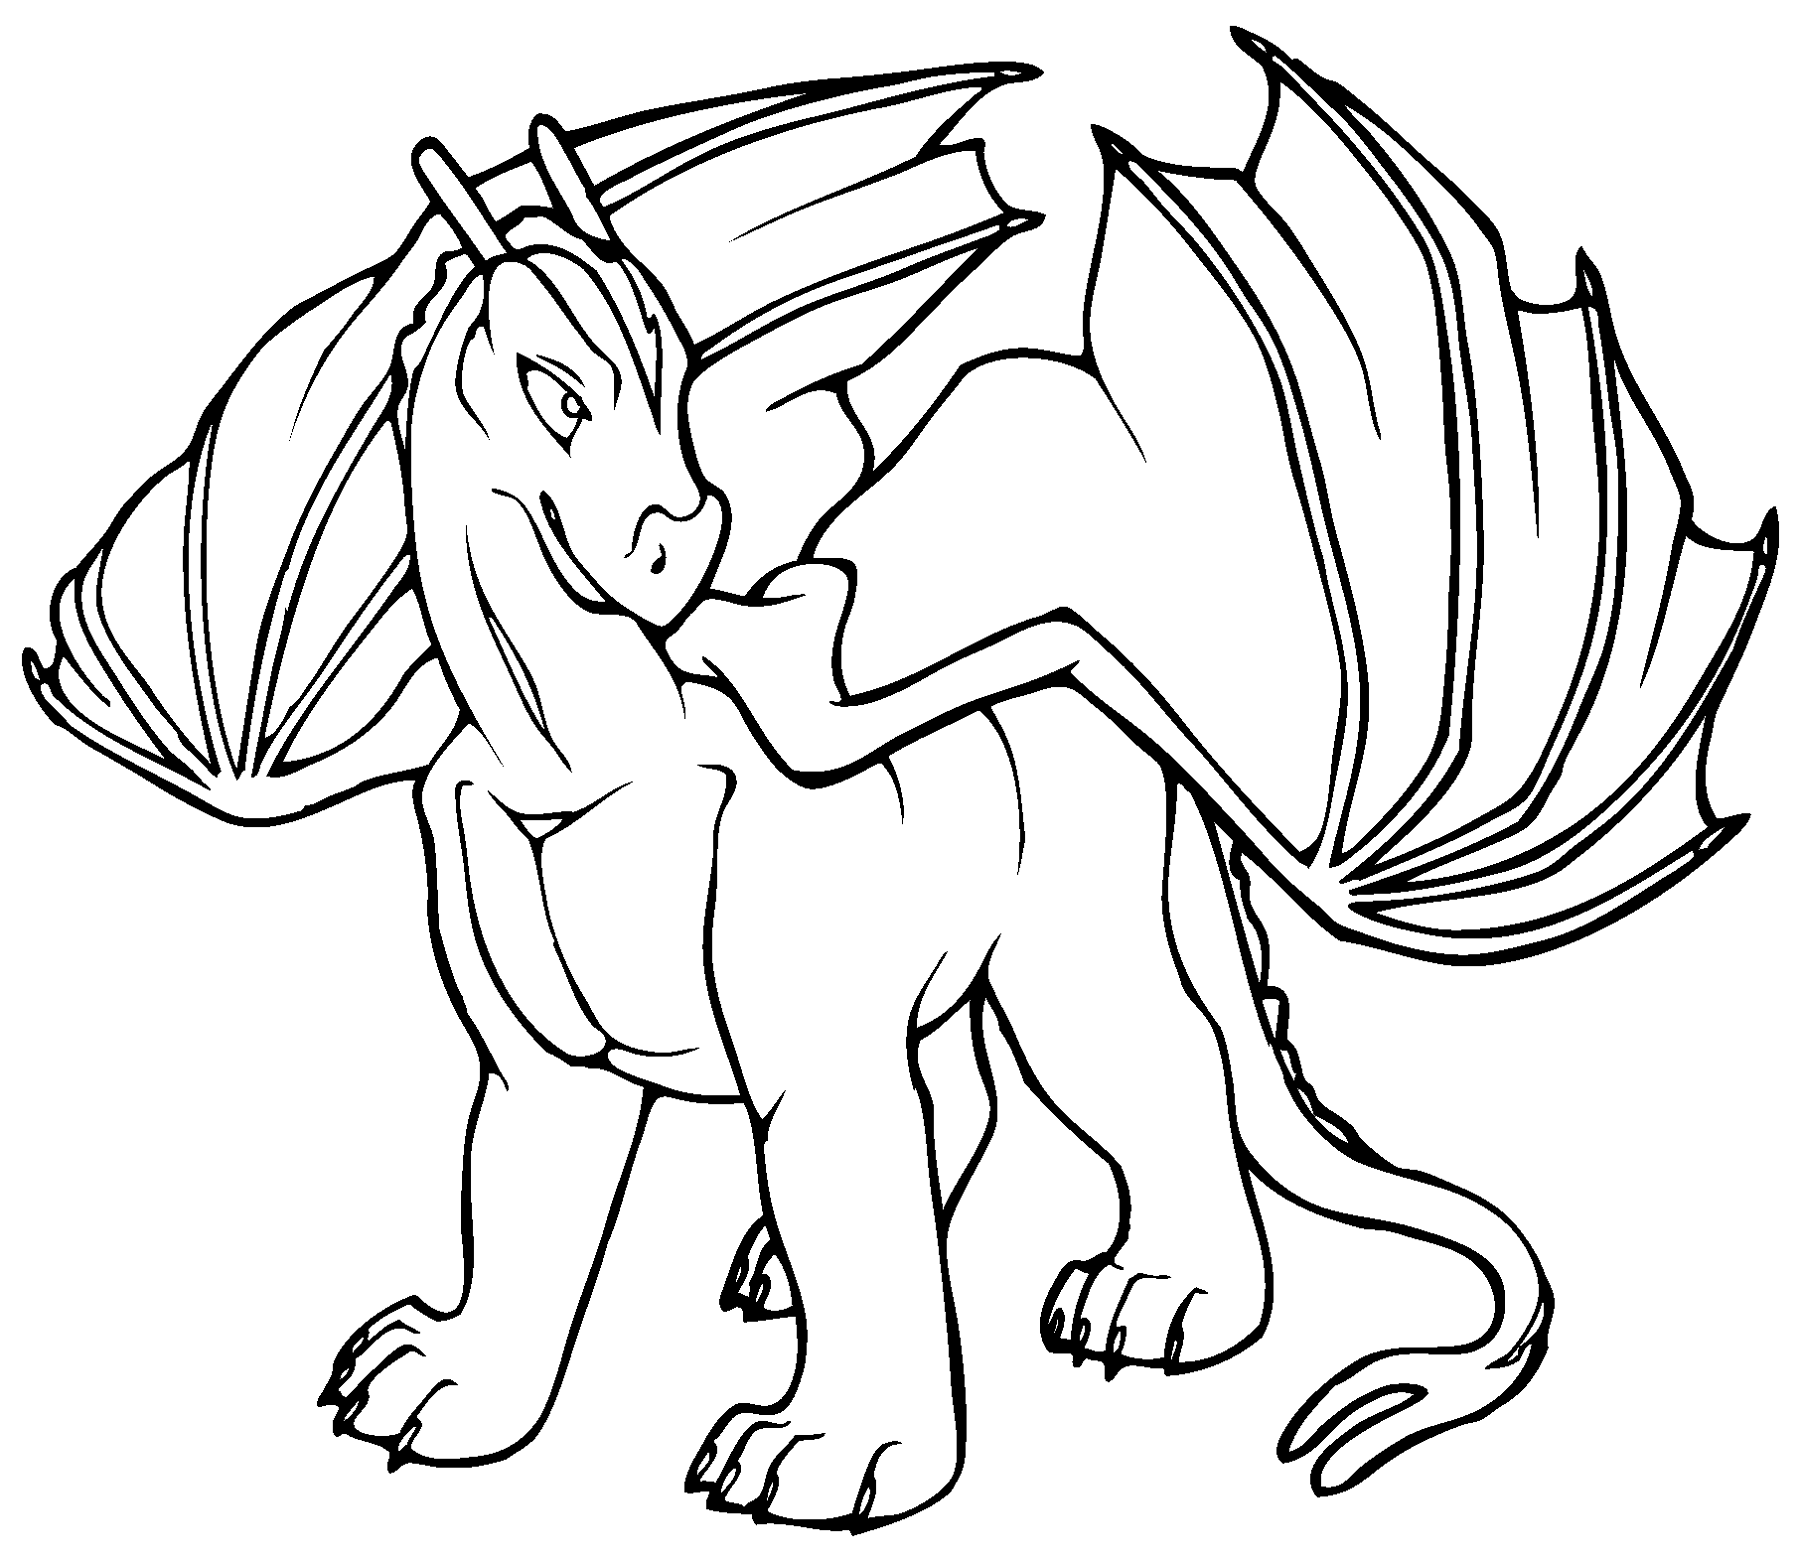 dragon pics to color dragon coloring pages printable activity shelter pics color dragon to